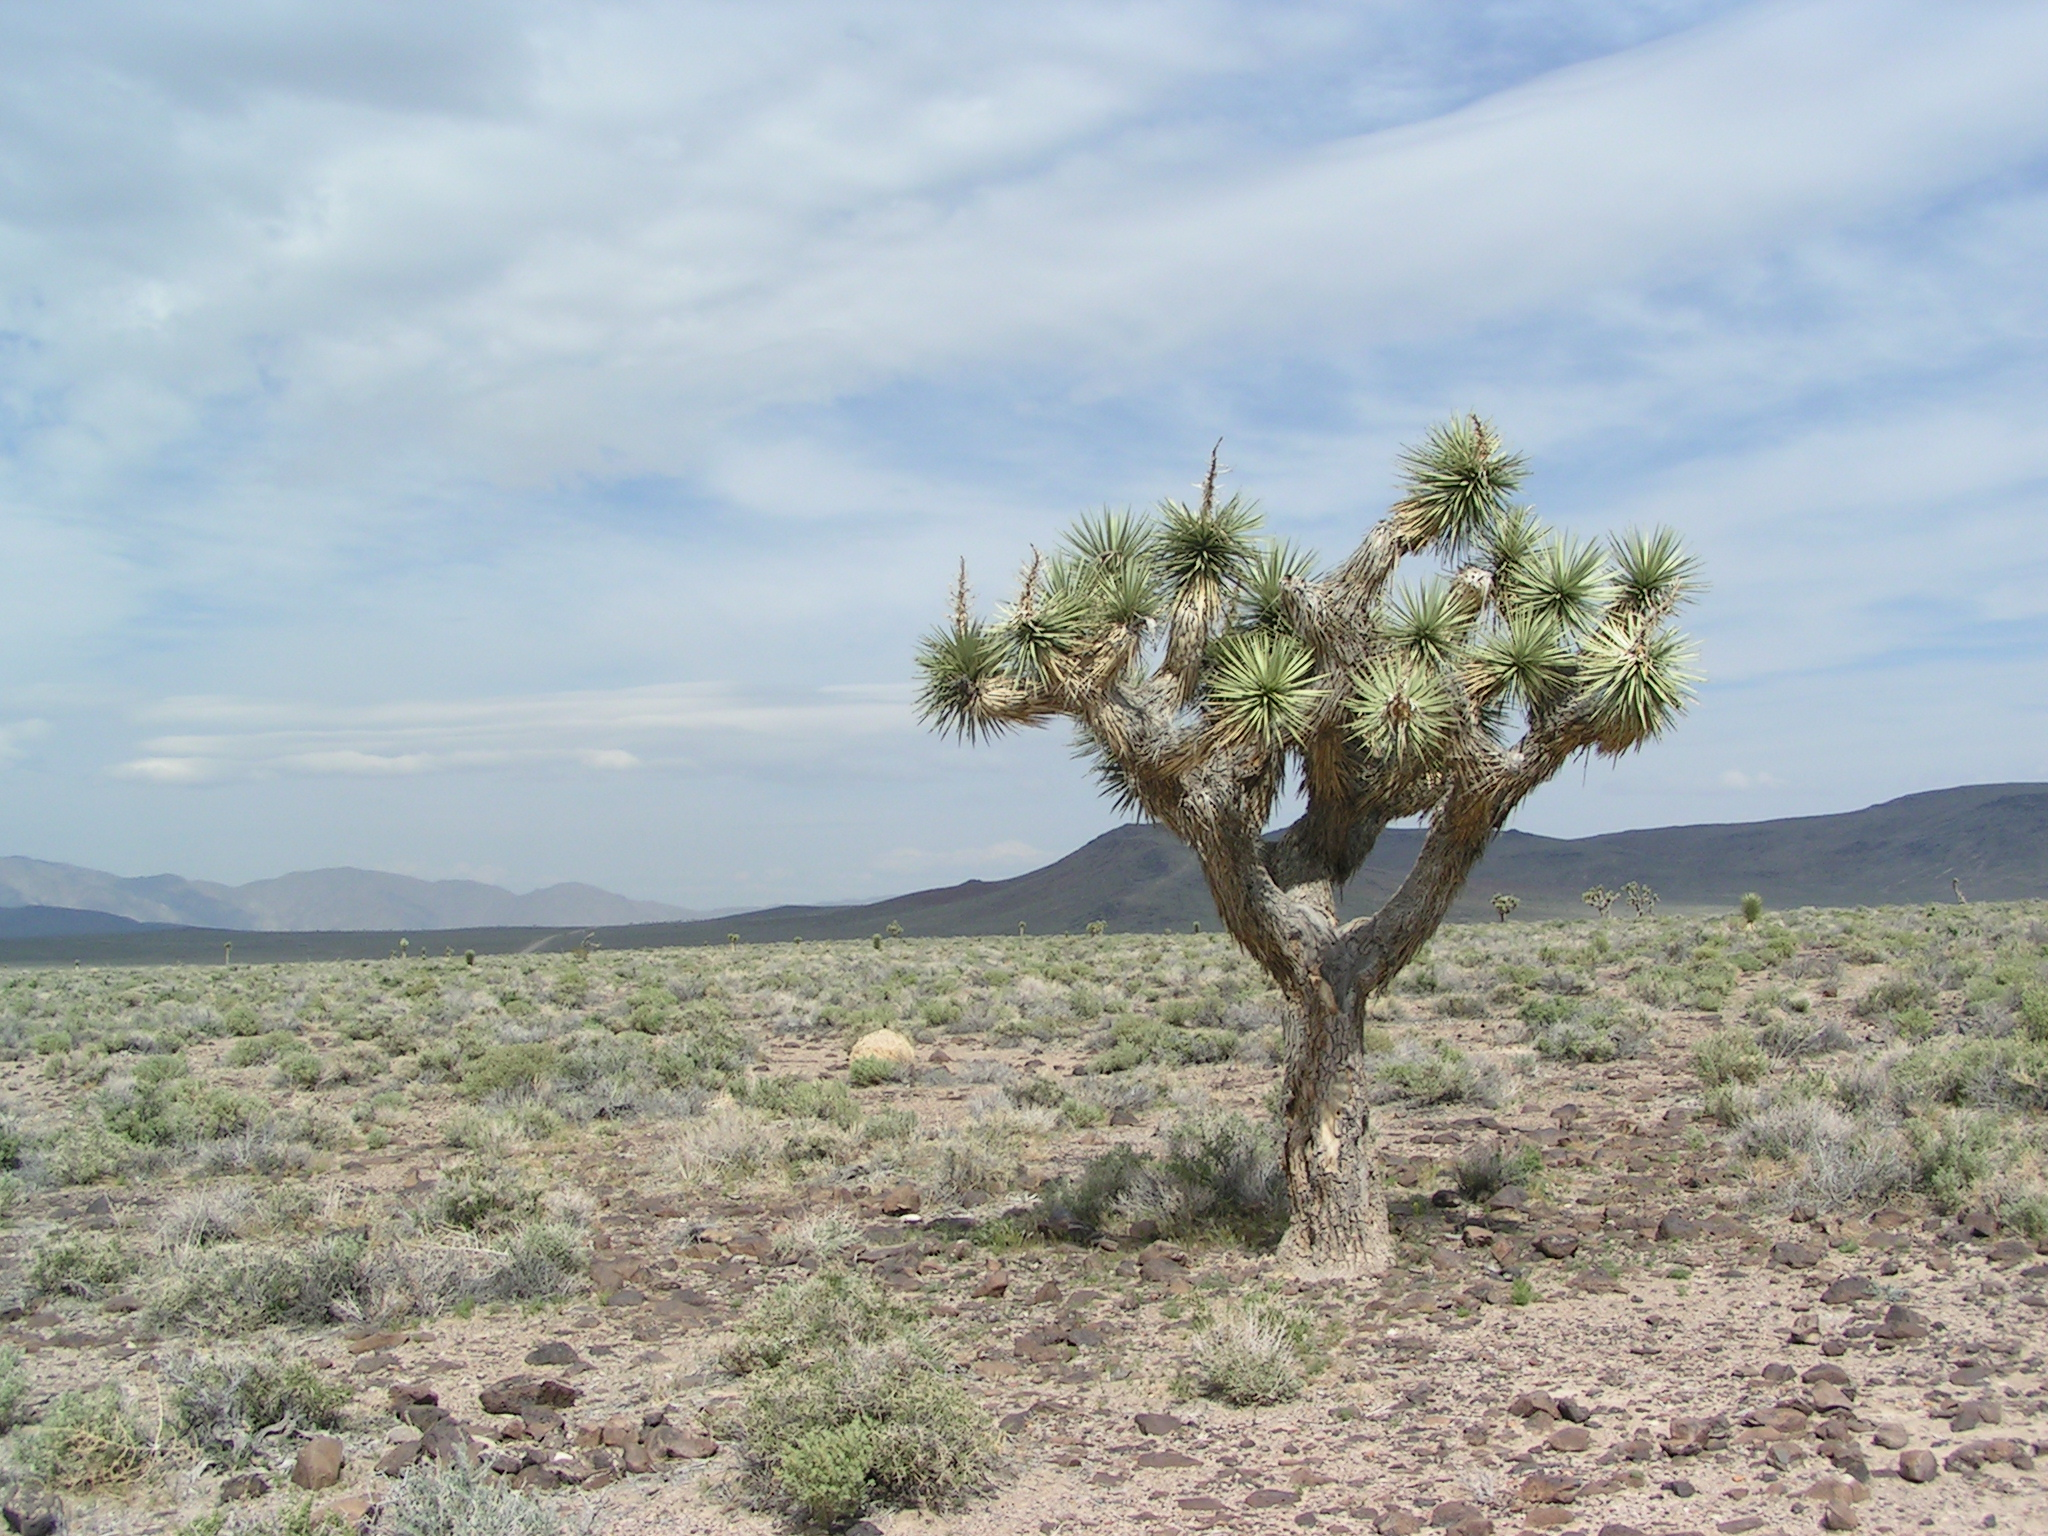 File:Joshua Tree 2004.JPG